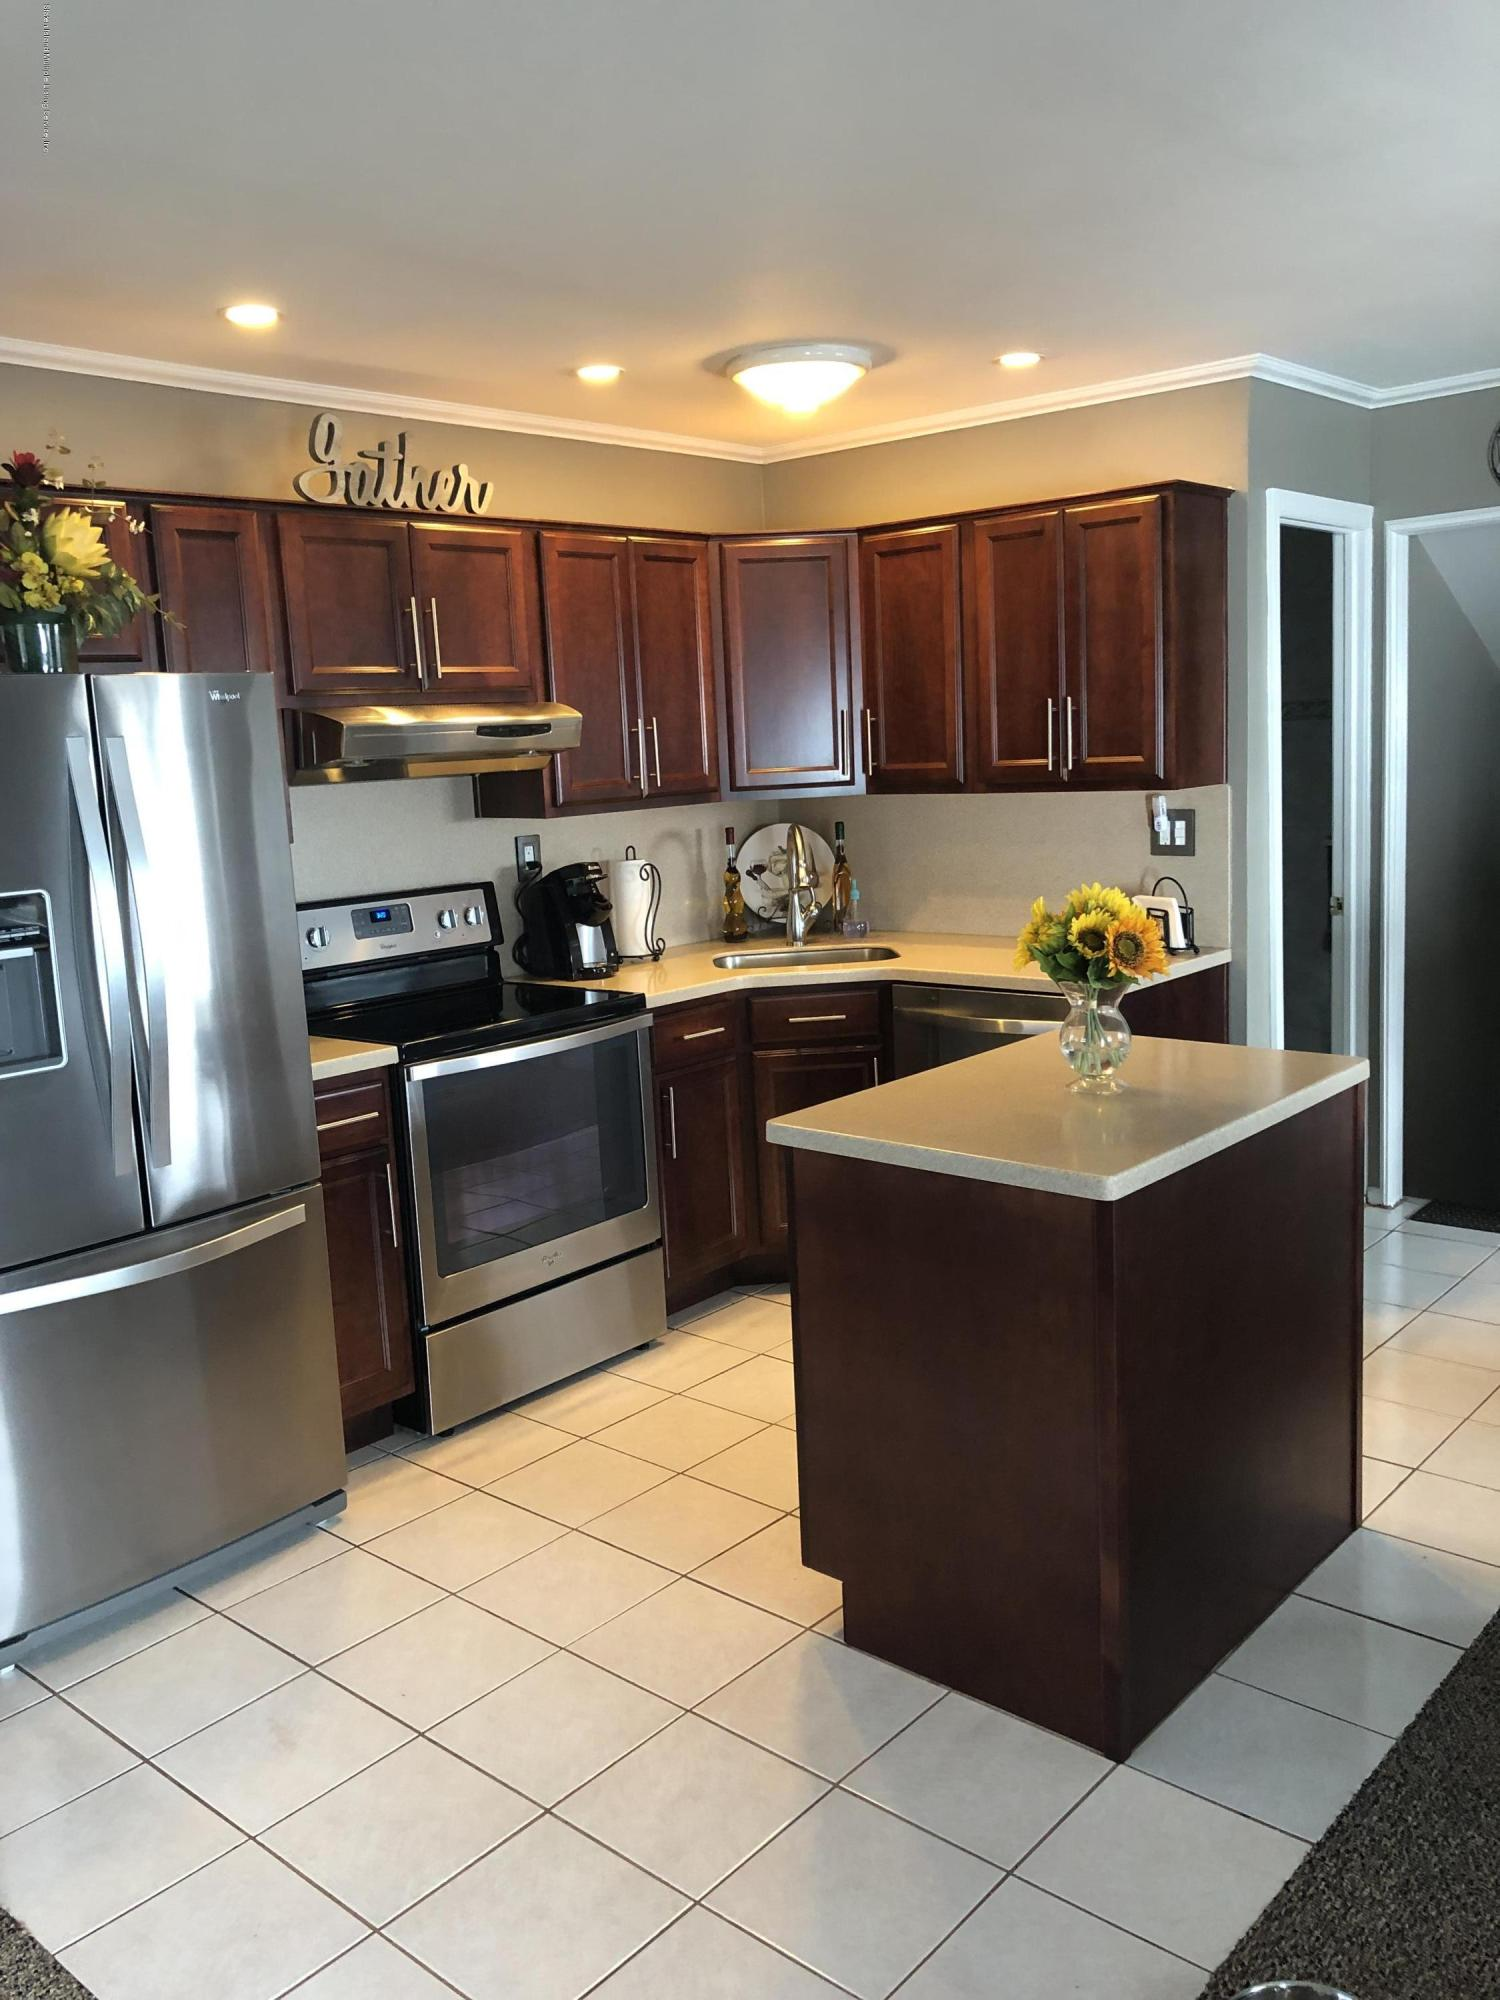 Single Family - Semi-Attached 93 Middle Loop Road  Staten Island, NY 10308, MLS-1131446-3